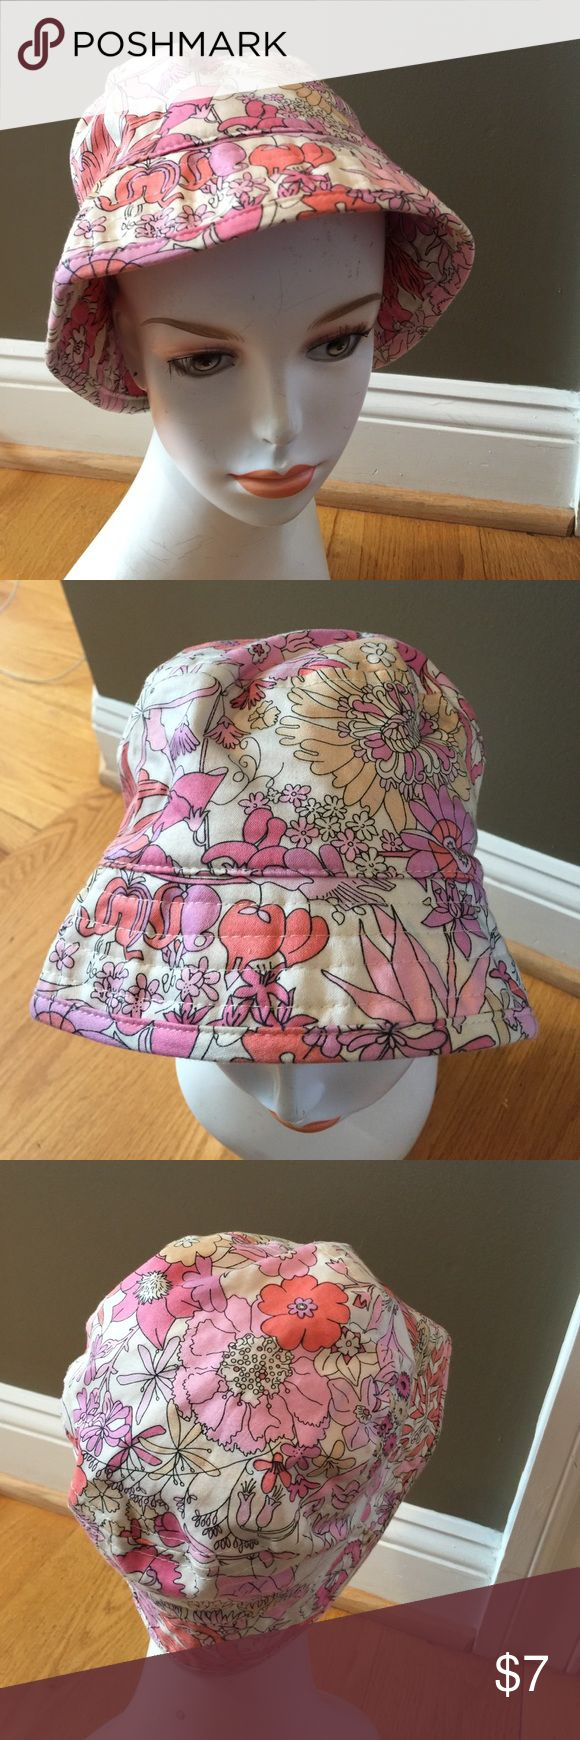 Liberty of London target floral bucket hat cap Great auth hat shows wear priced accordingly liberty of london Accessories Hats